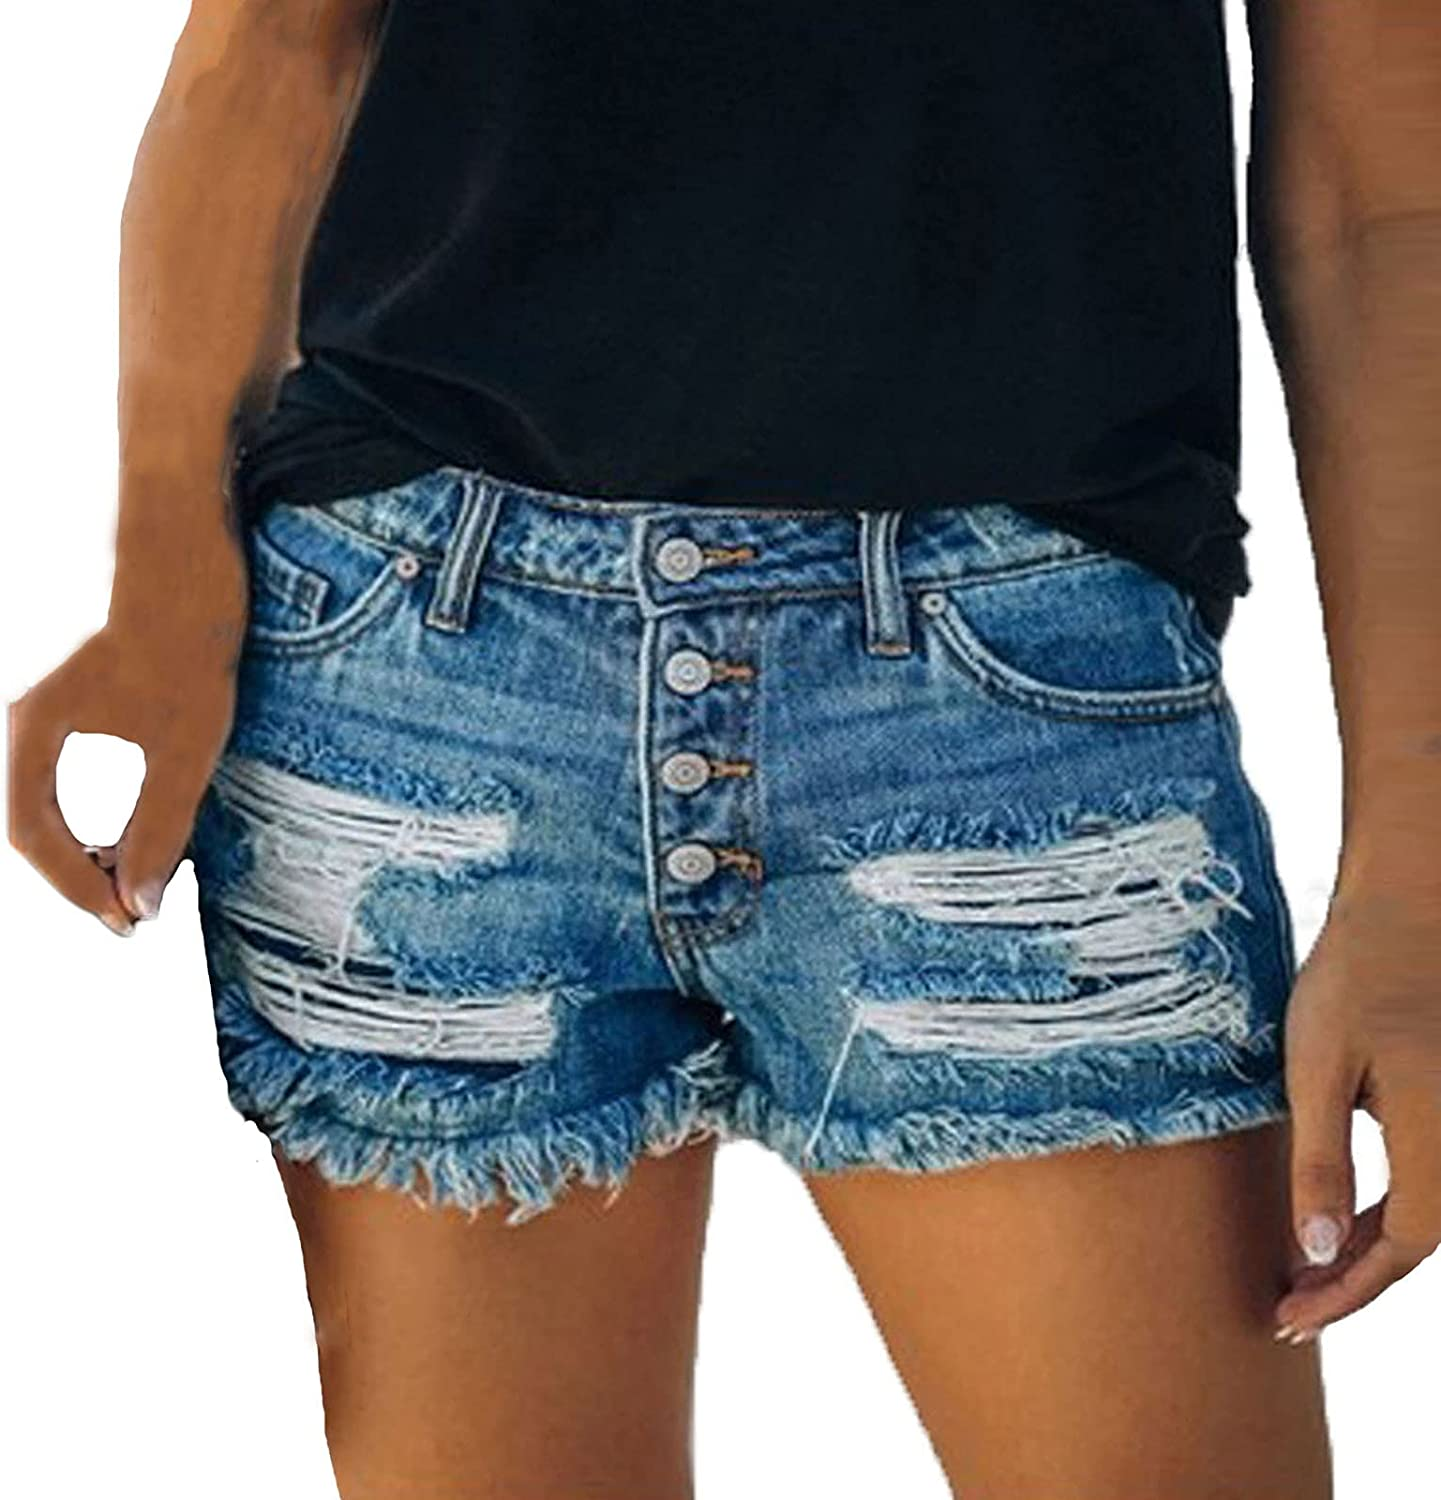 LONEA Women's Summer Sexy Ripped Four Button Denim Shorts Back Pocket Symmetrical Independence Day Printed Shorts